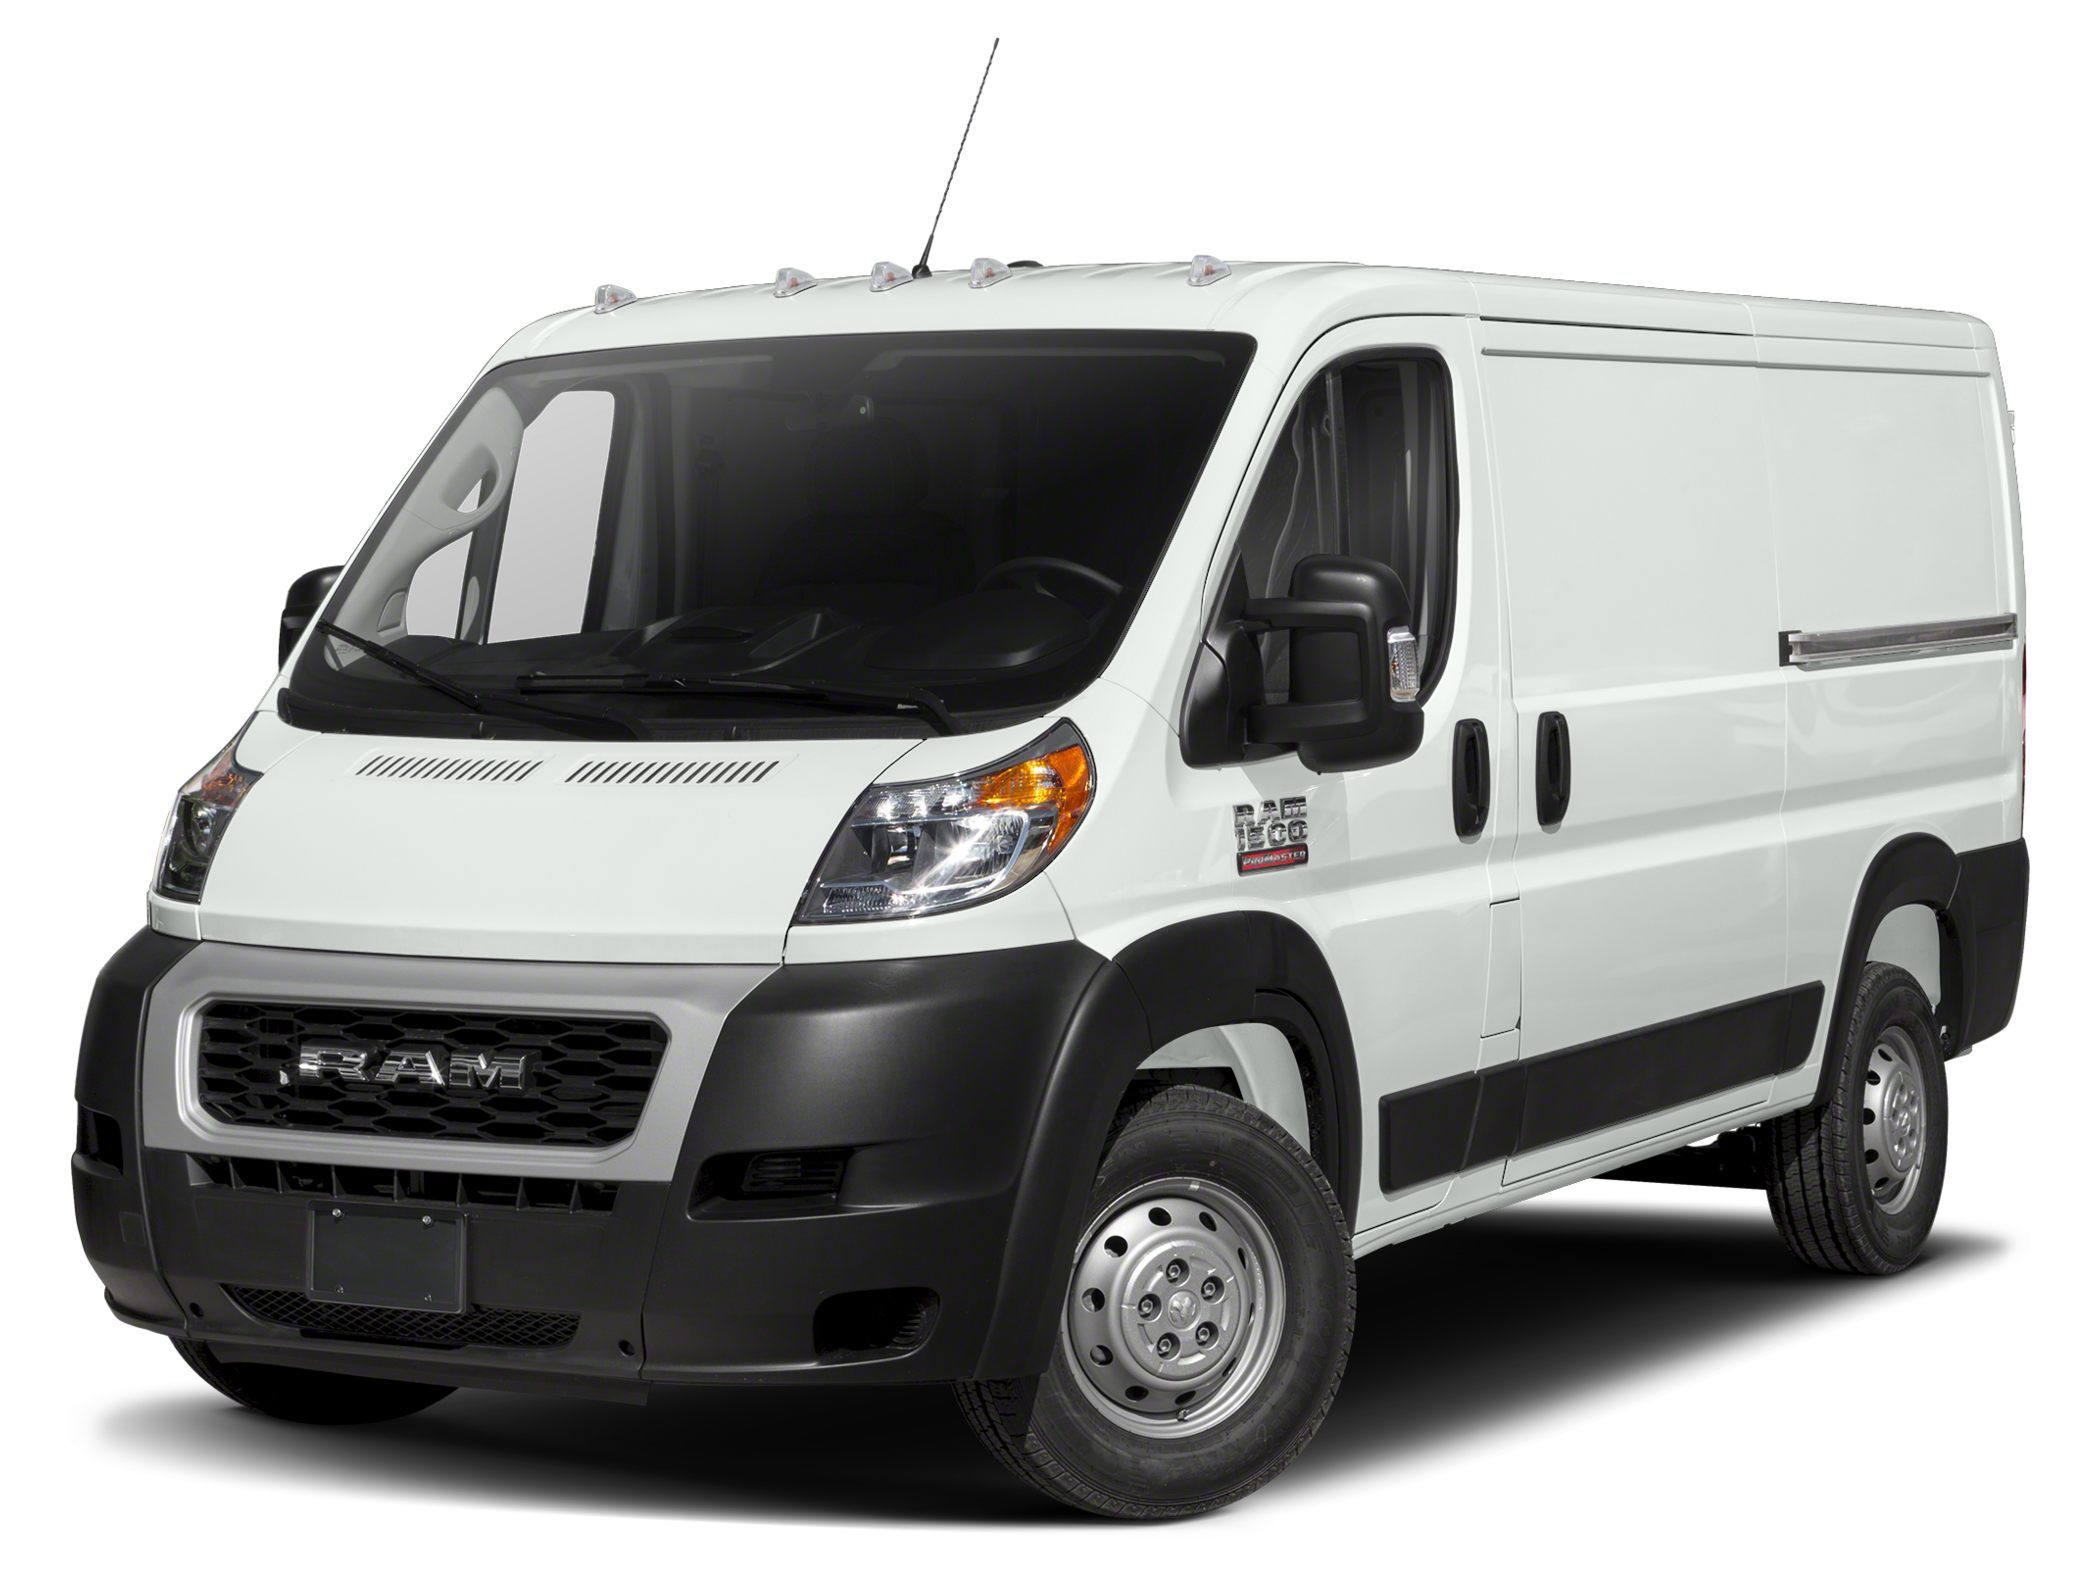 used 2019 Ram ProMaster 1500 car, priced at $32,900